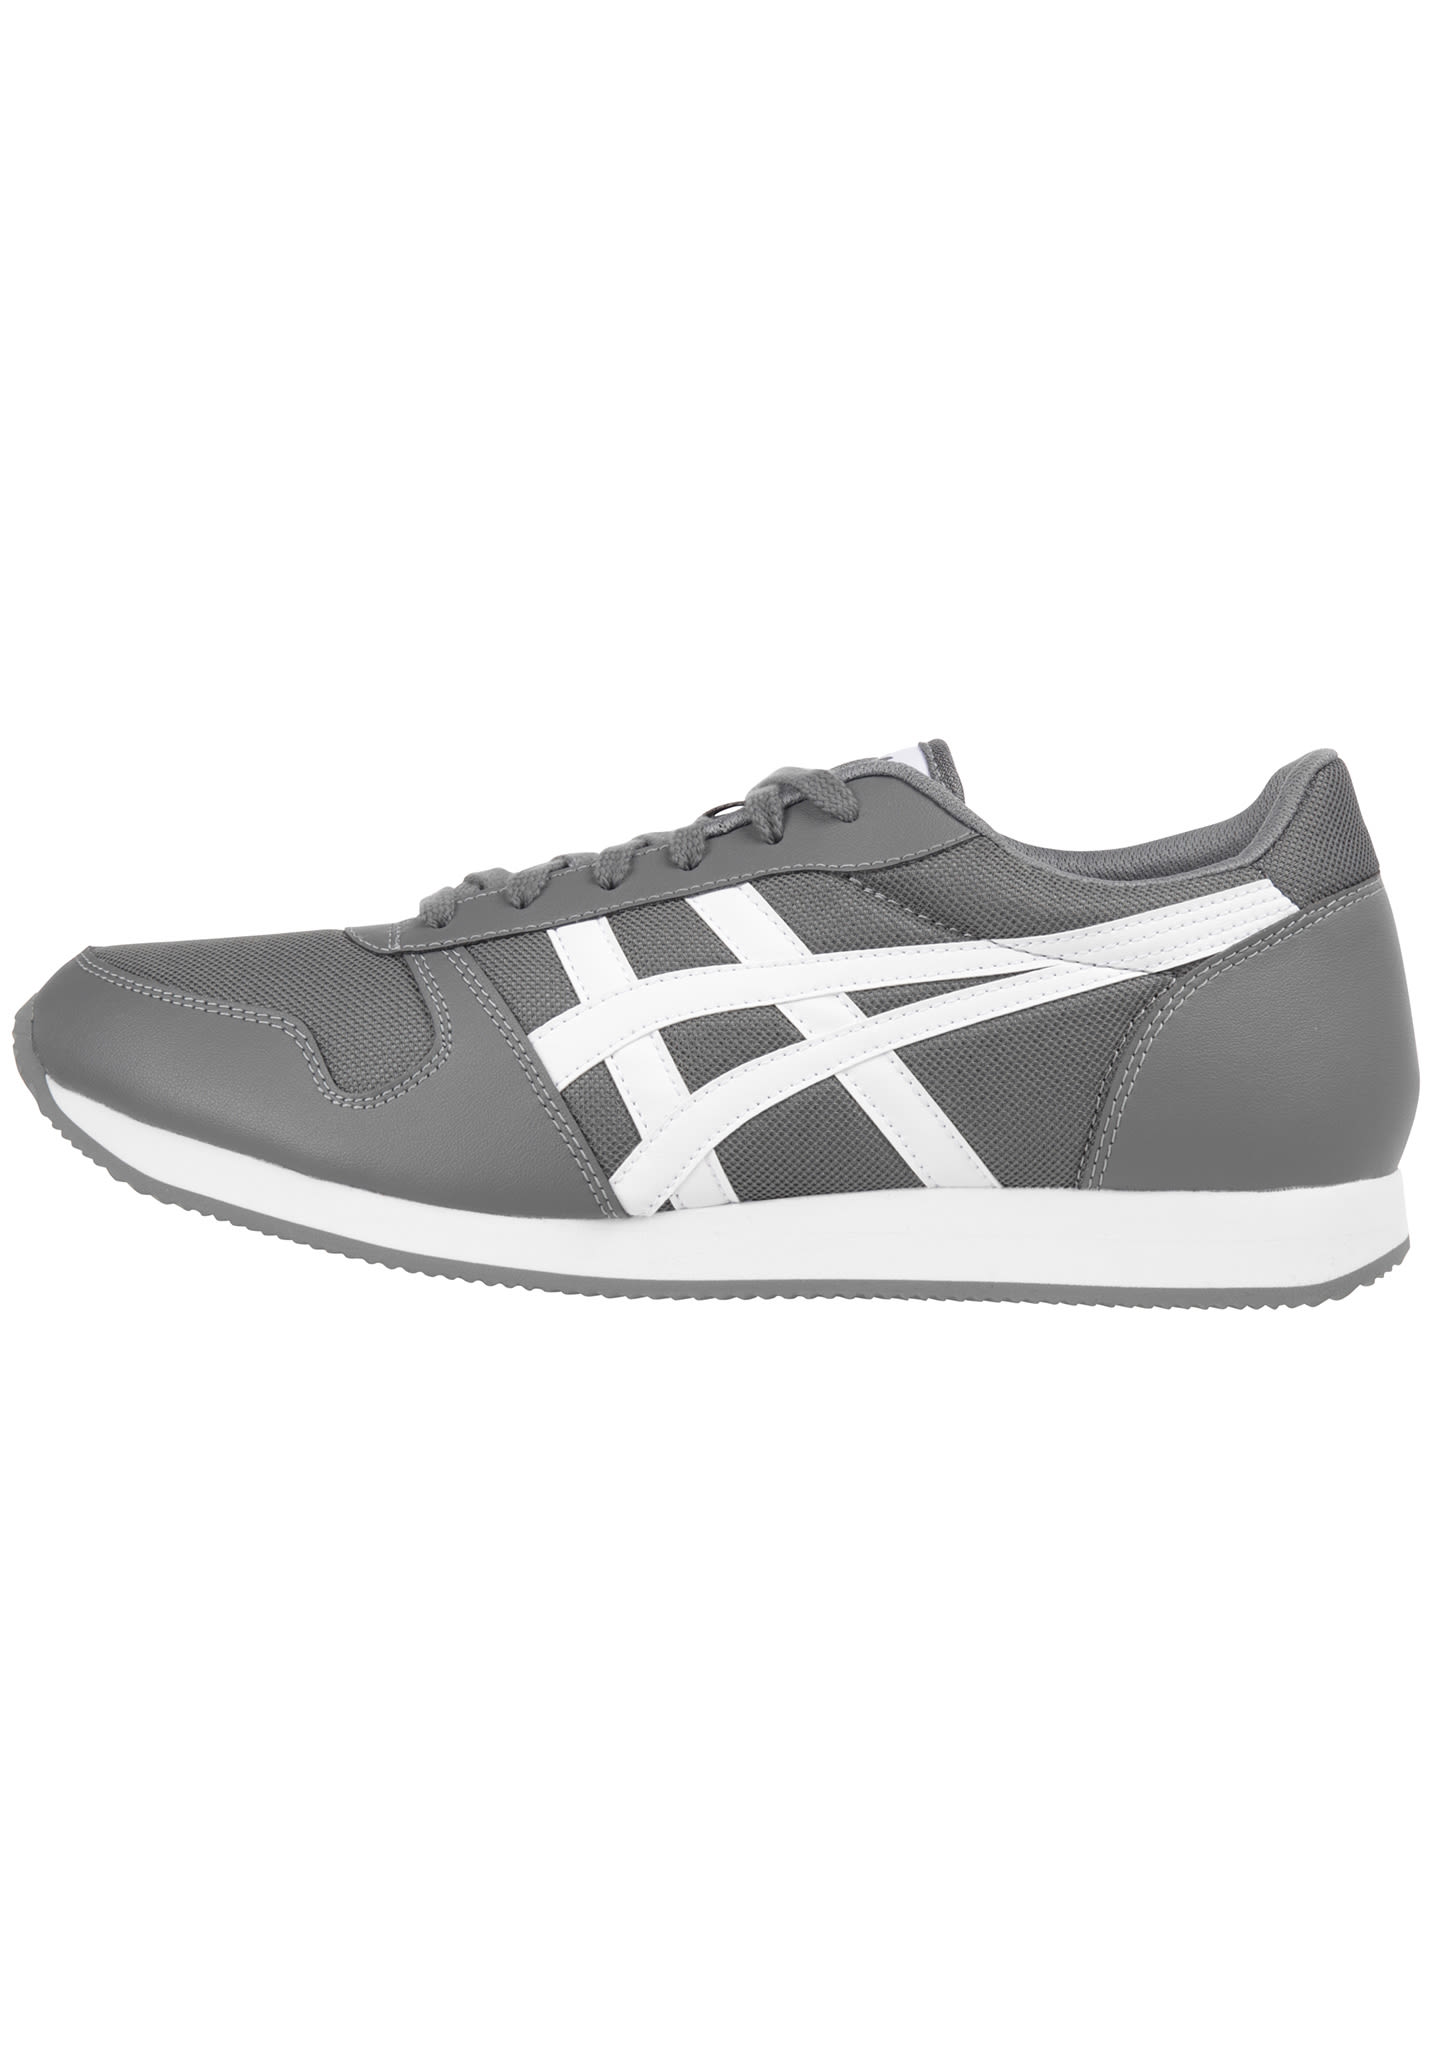 outlet store cd4fe b7f97 Asics Tiger Curreo II - Sneakers for Men - Grey